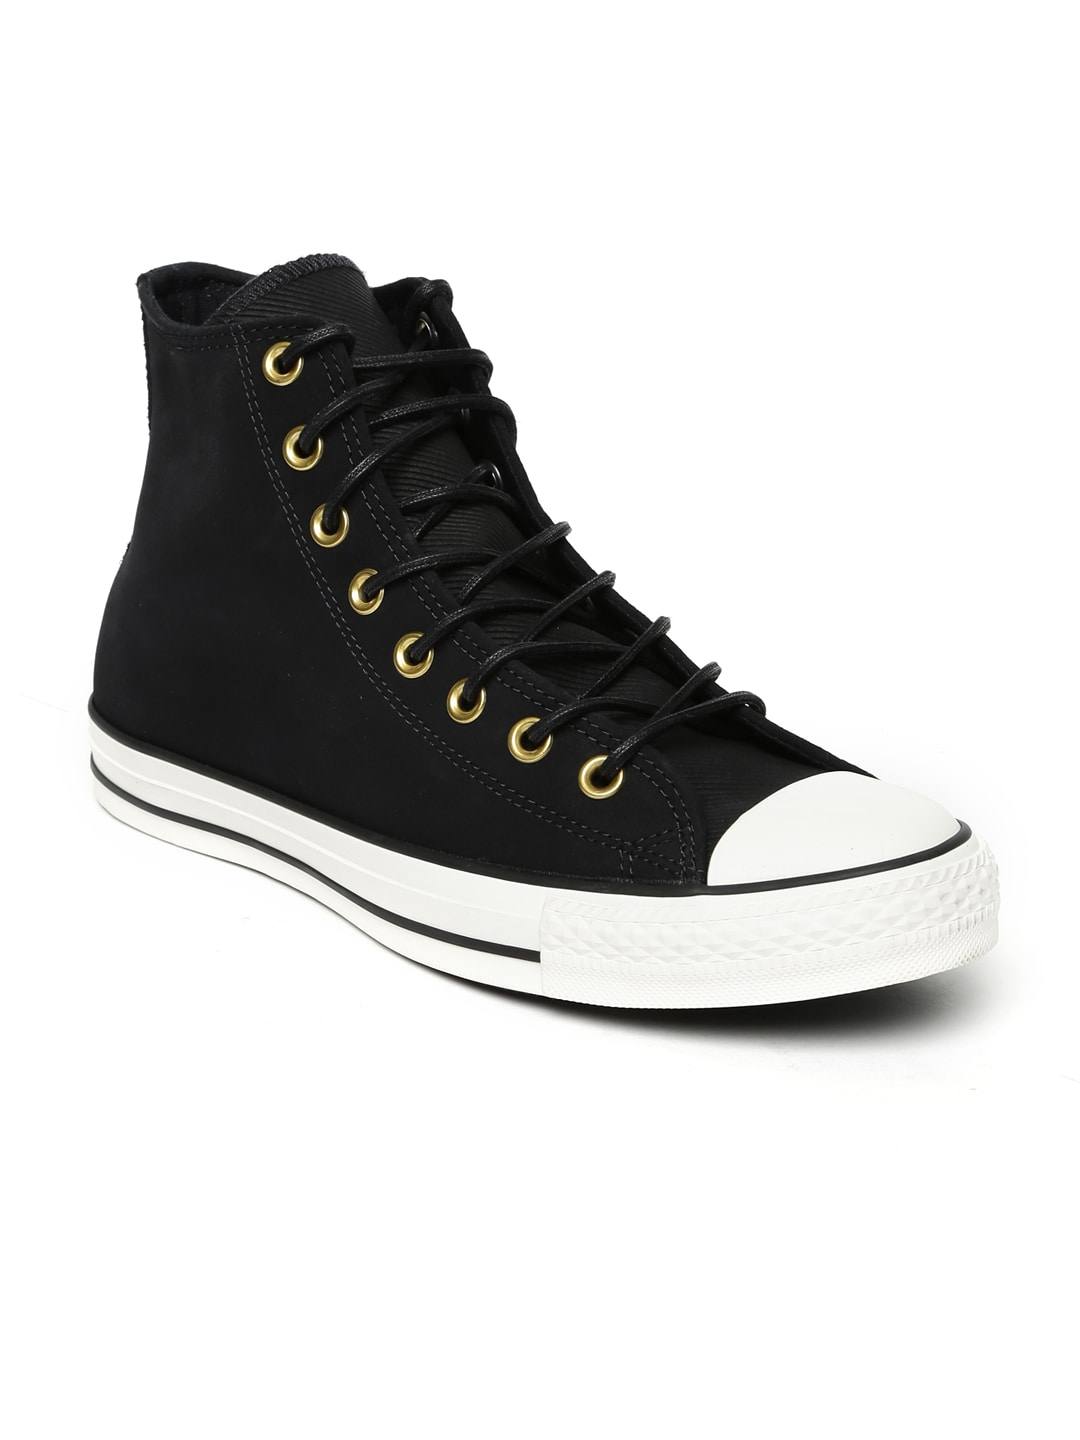 black converse shoes for men